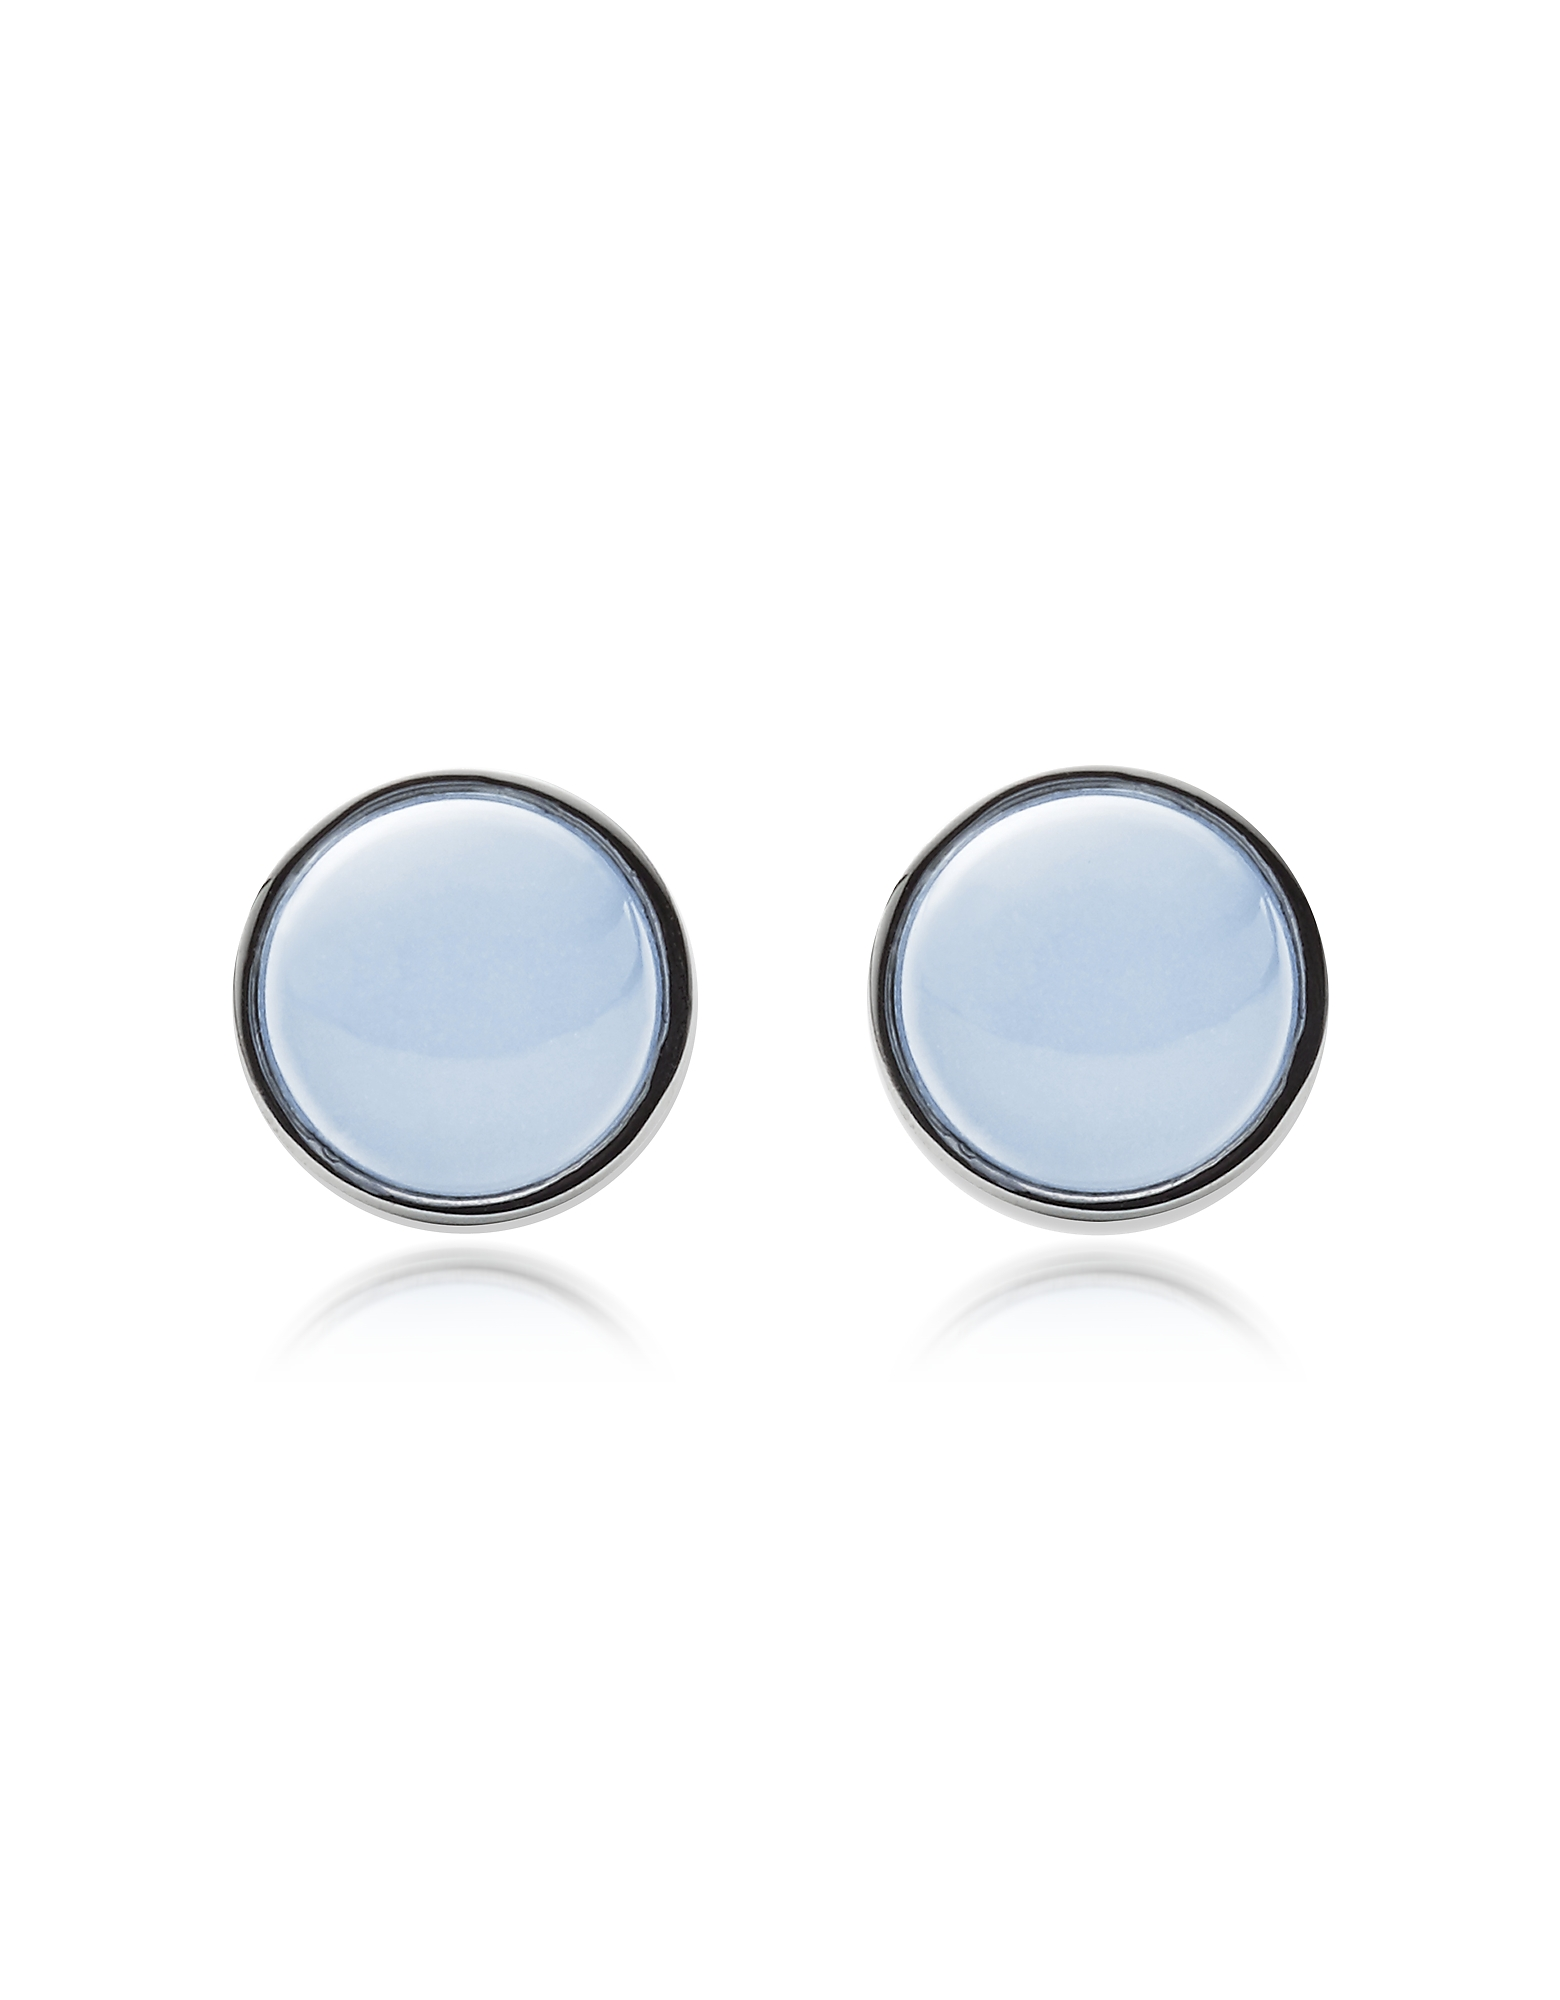 Skagen Earrings, Sea Glass and Stainless Steel Women's Round Earrings